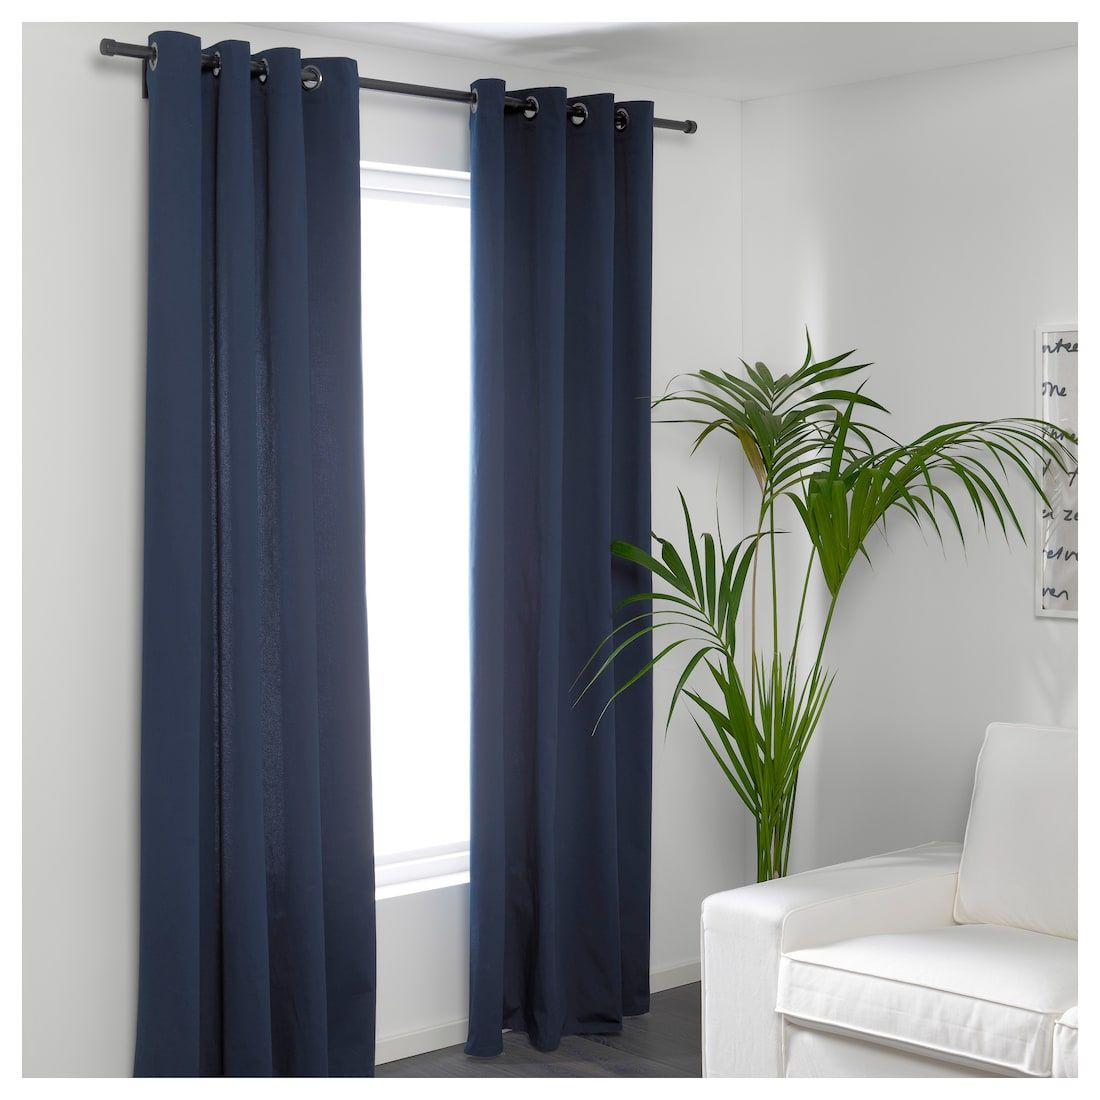 Ikea Us Furniture And Home Furnishings Blue Curtains Living Room Living Room Decor Curtains Curtains Living Room